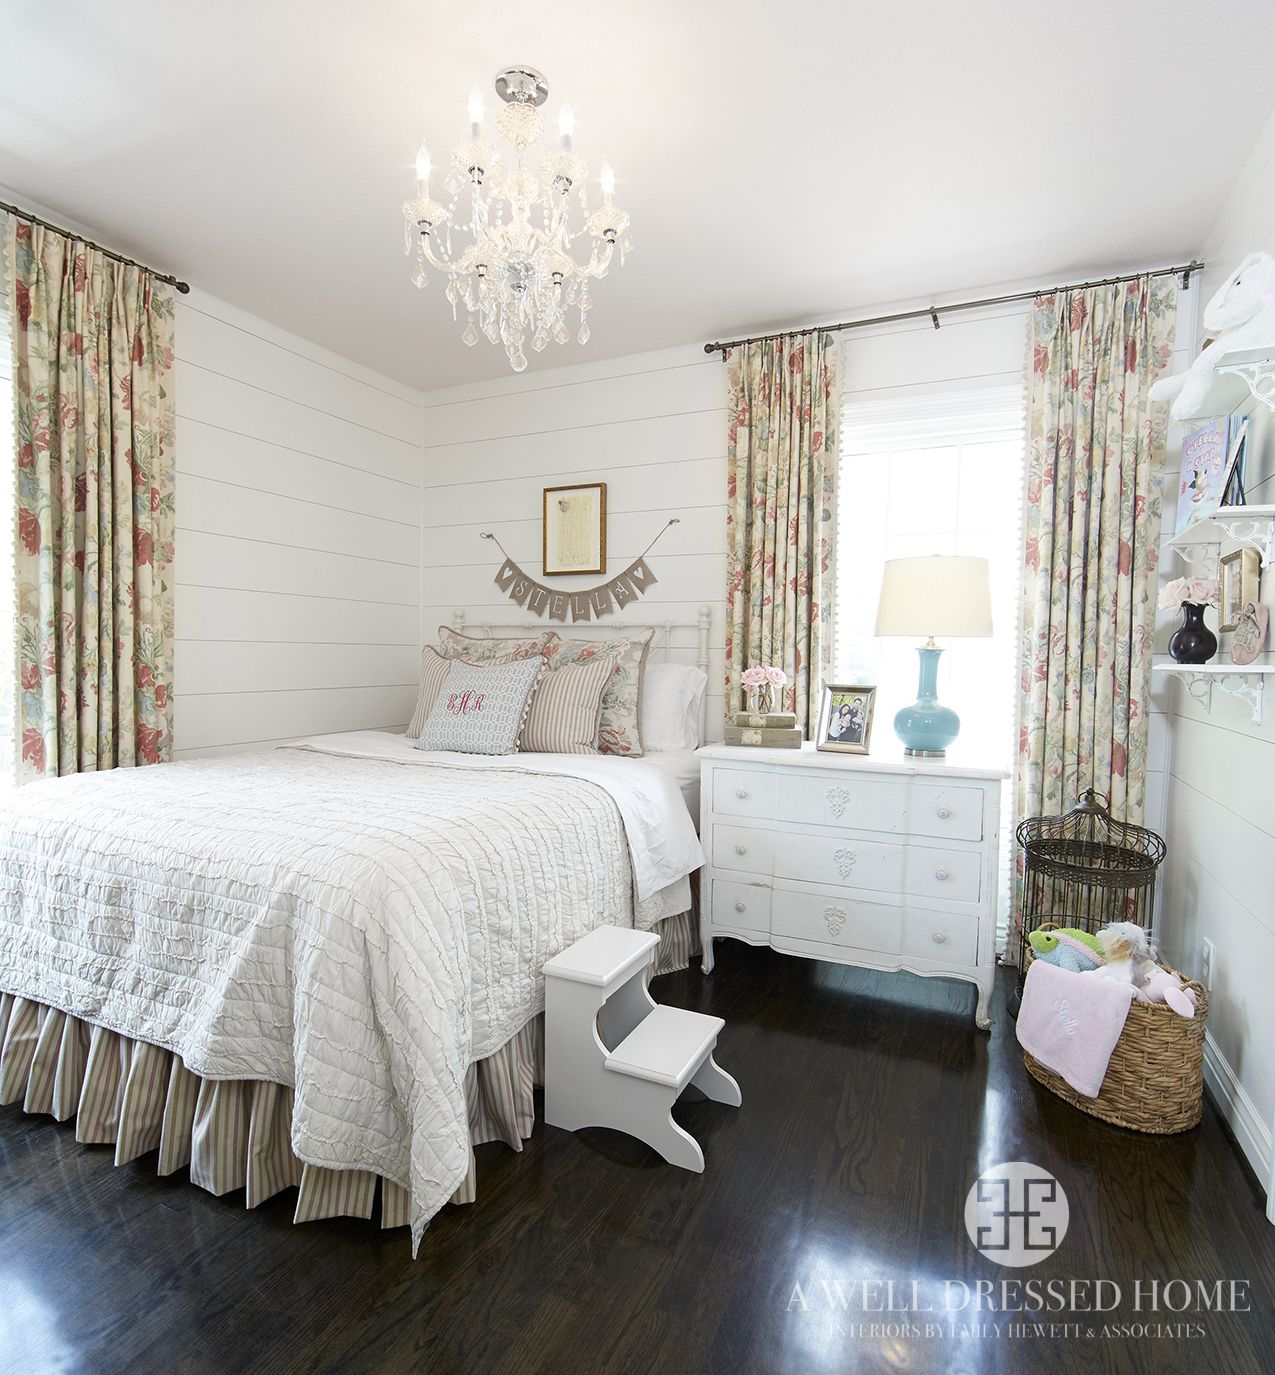 S Bedroom By A Well Dressed Home Llc To Read More About This Project